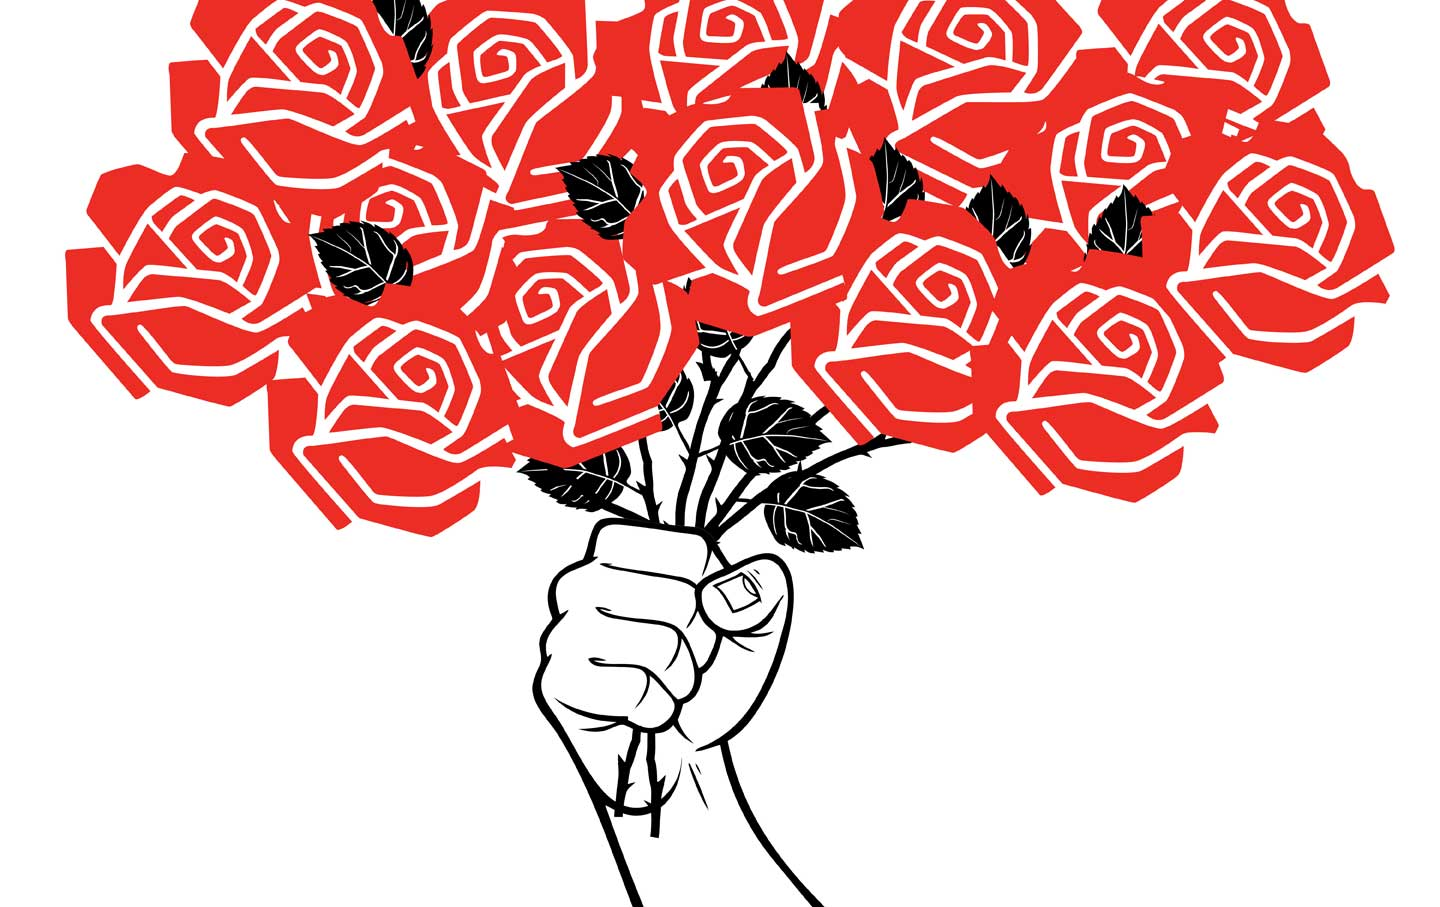 Since Trump's Victory, Democratic Socialists of America Has